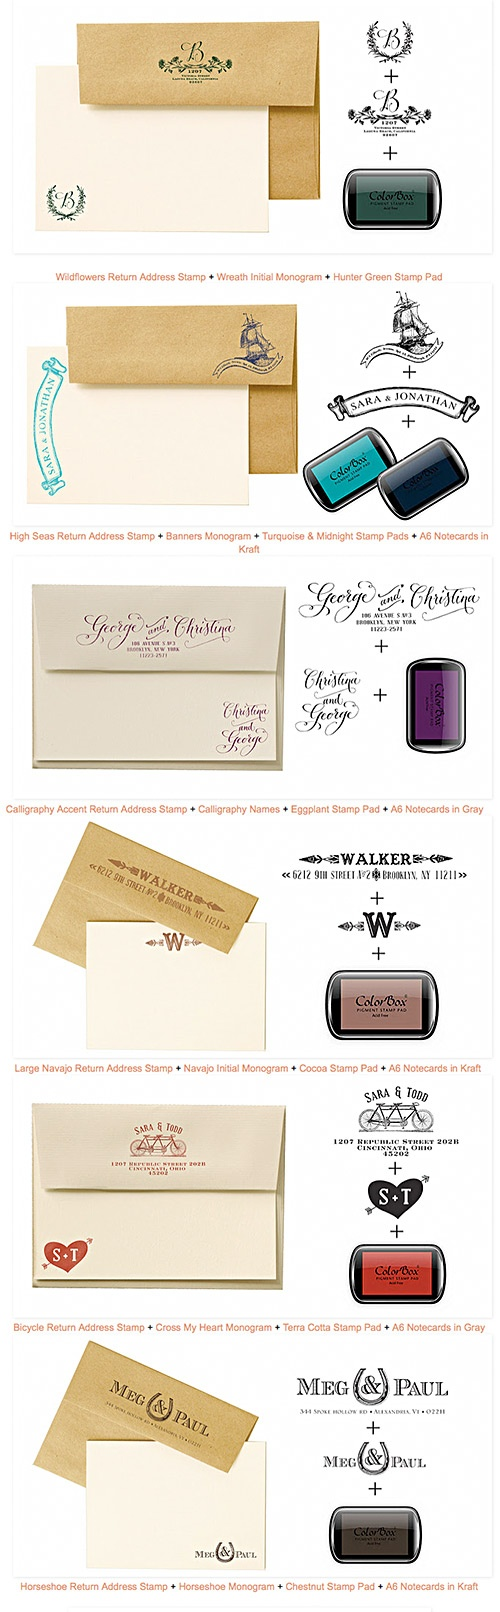 Custom Rubber Stamp Ideas from Antiquaria. They design and produce custom stamps for DIY stationery sets.